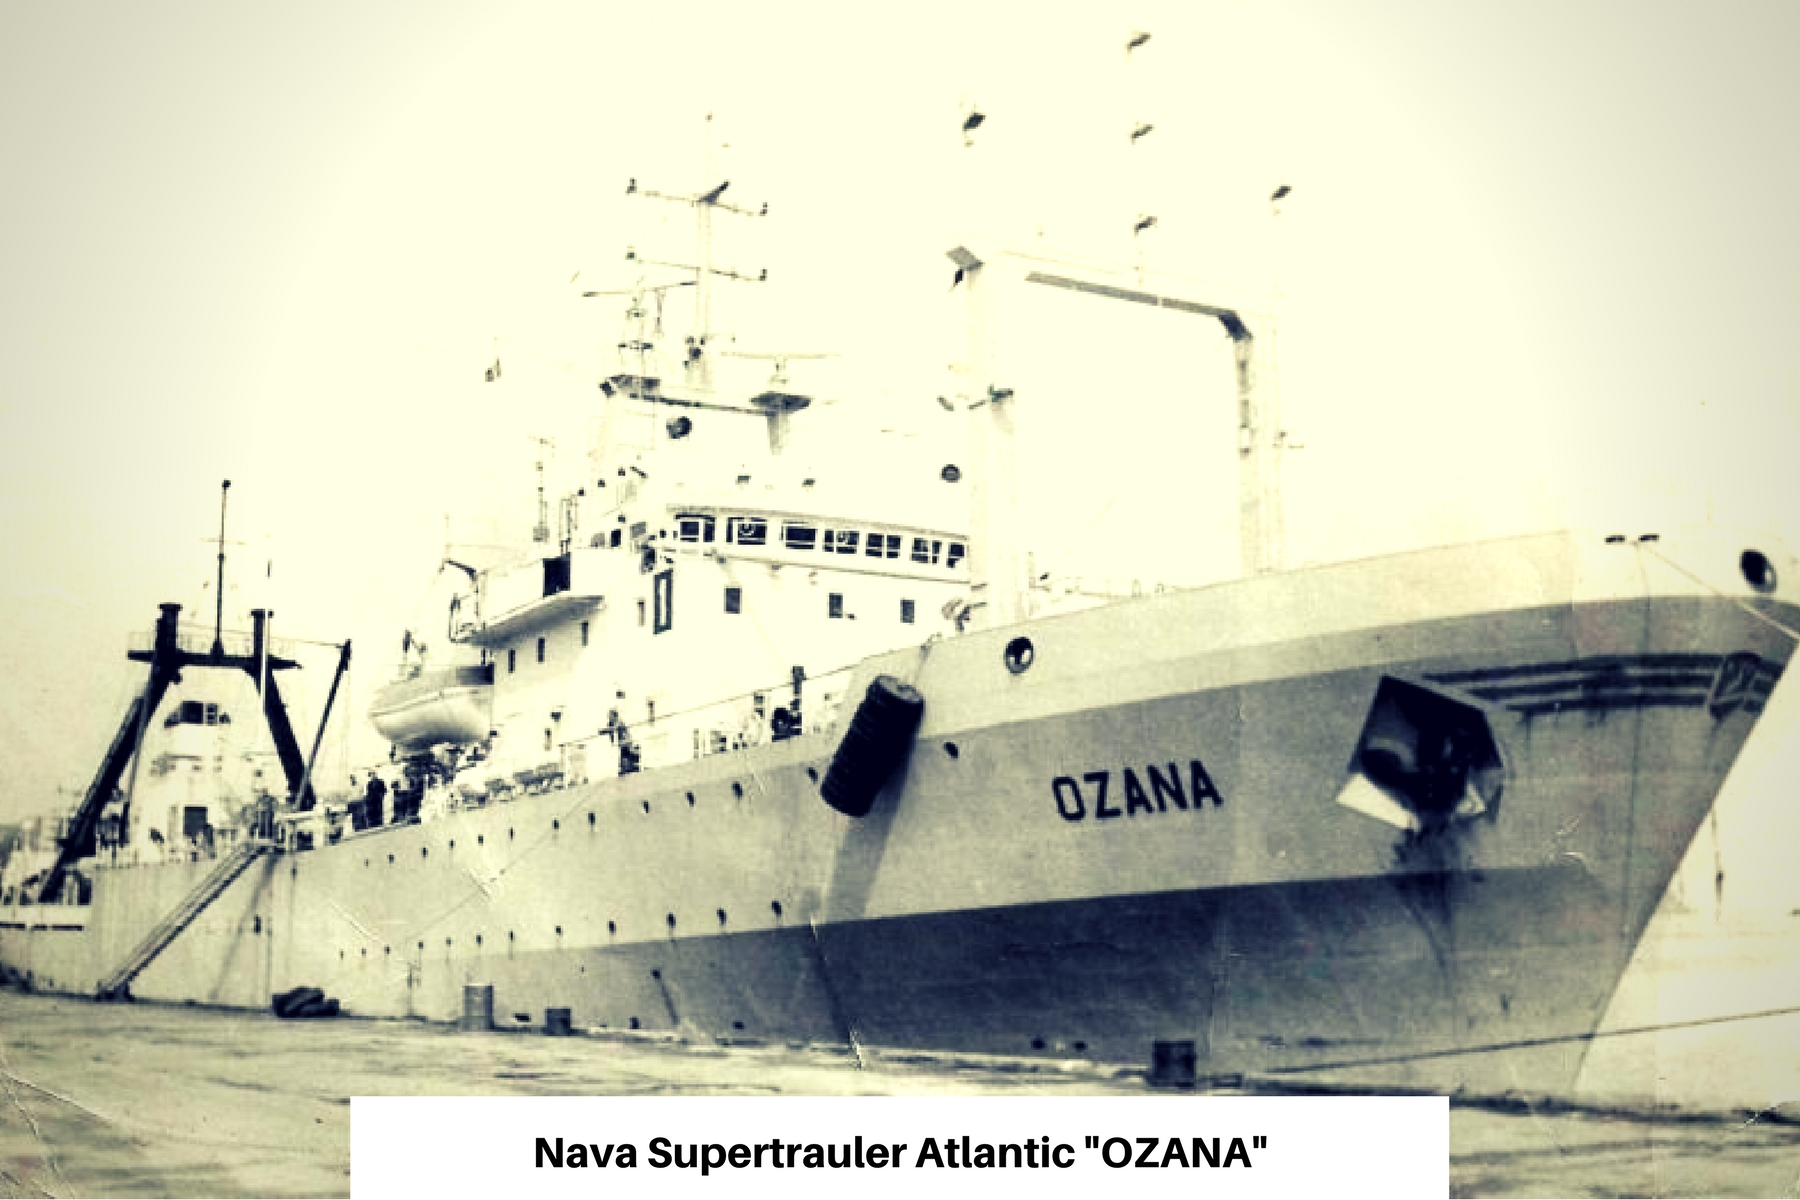 Nava Supertrauler Atlantic OZANA